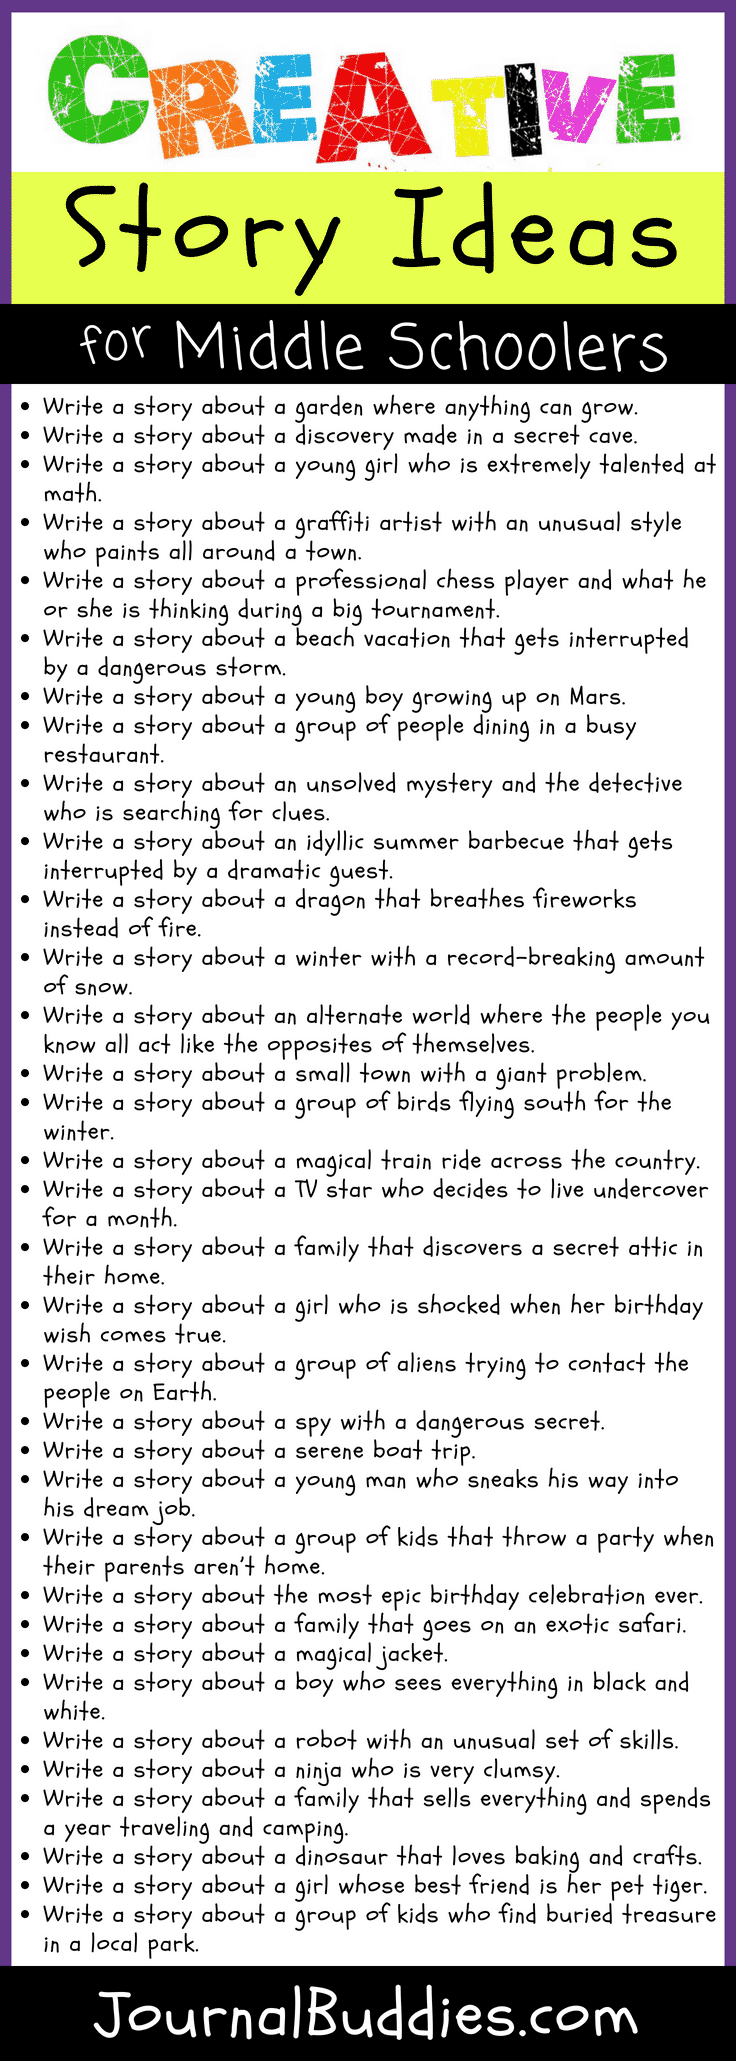 Creative Story Ideas for Middle Schoolers